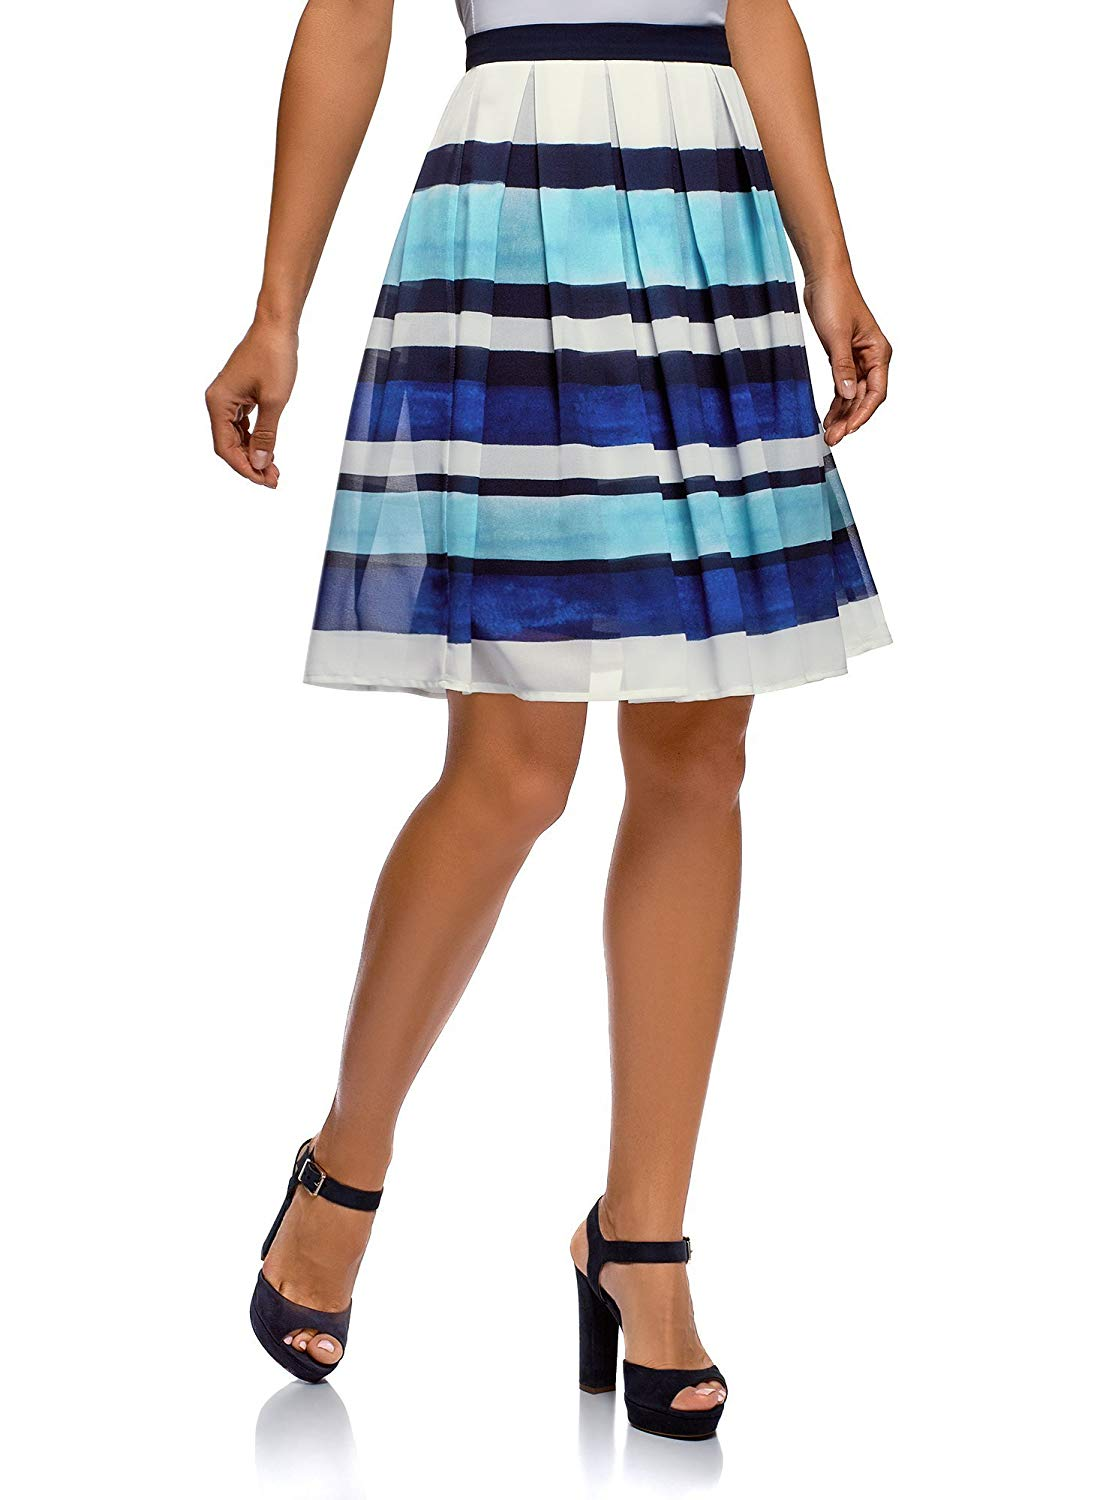 ab64011917 Get Quotations · oodji Collection Women's Pleated Skirt in Flowing Fabric